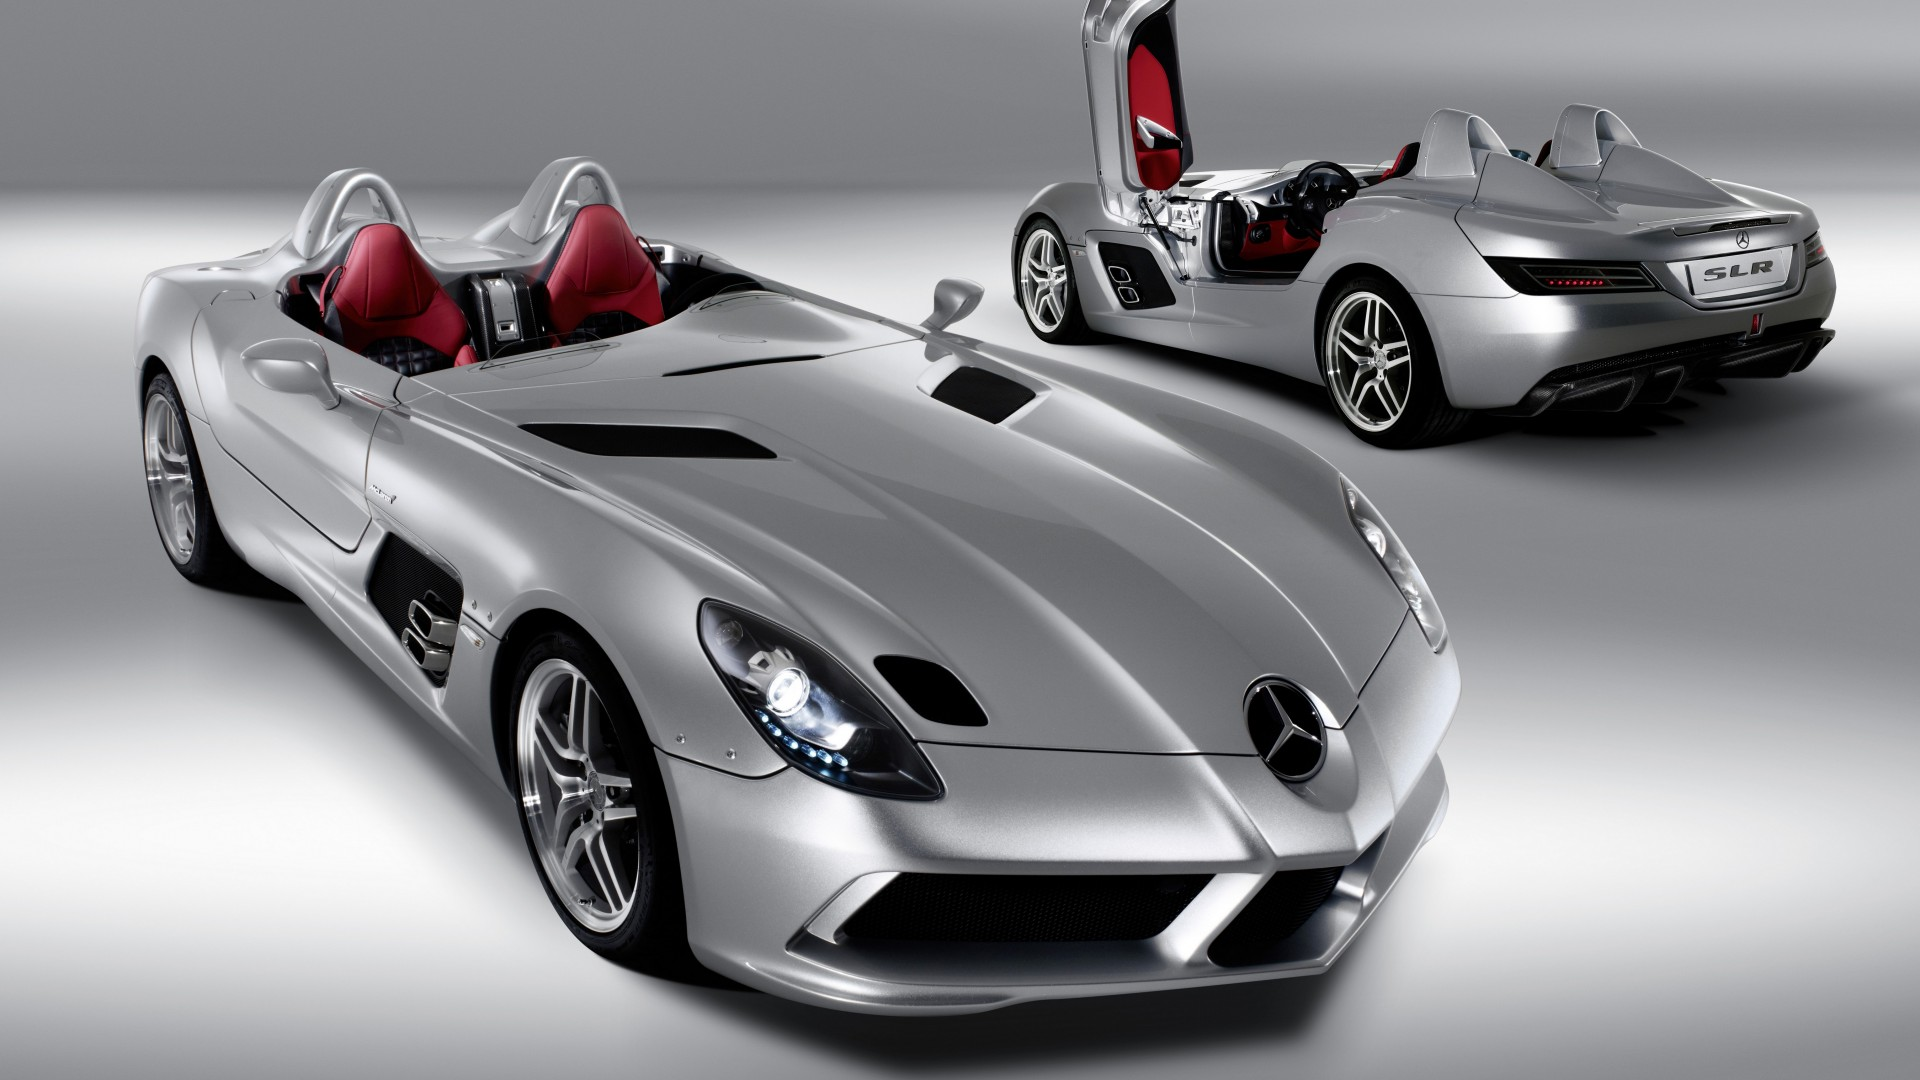 Wallpaper Mercedes Benz Slr Mclaren Stirling Moss